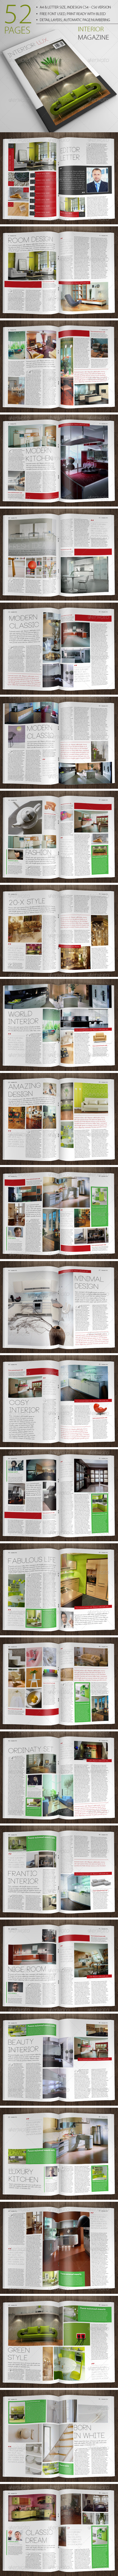 A4/Letter 52 Pages Interior Magazine - Magazines Print Templates